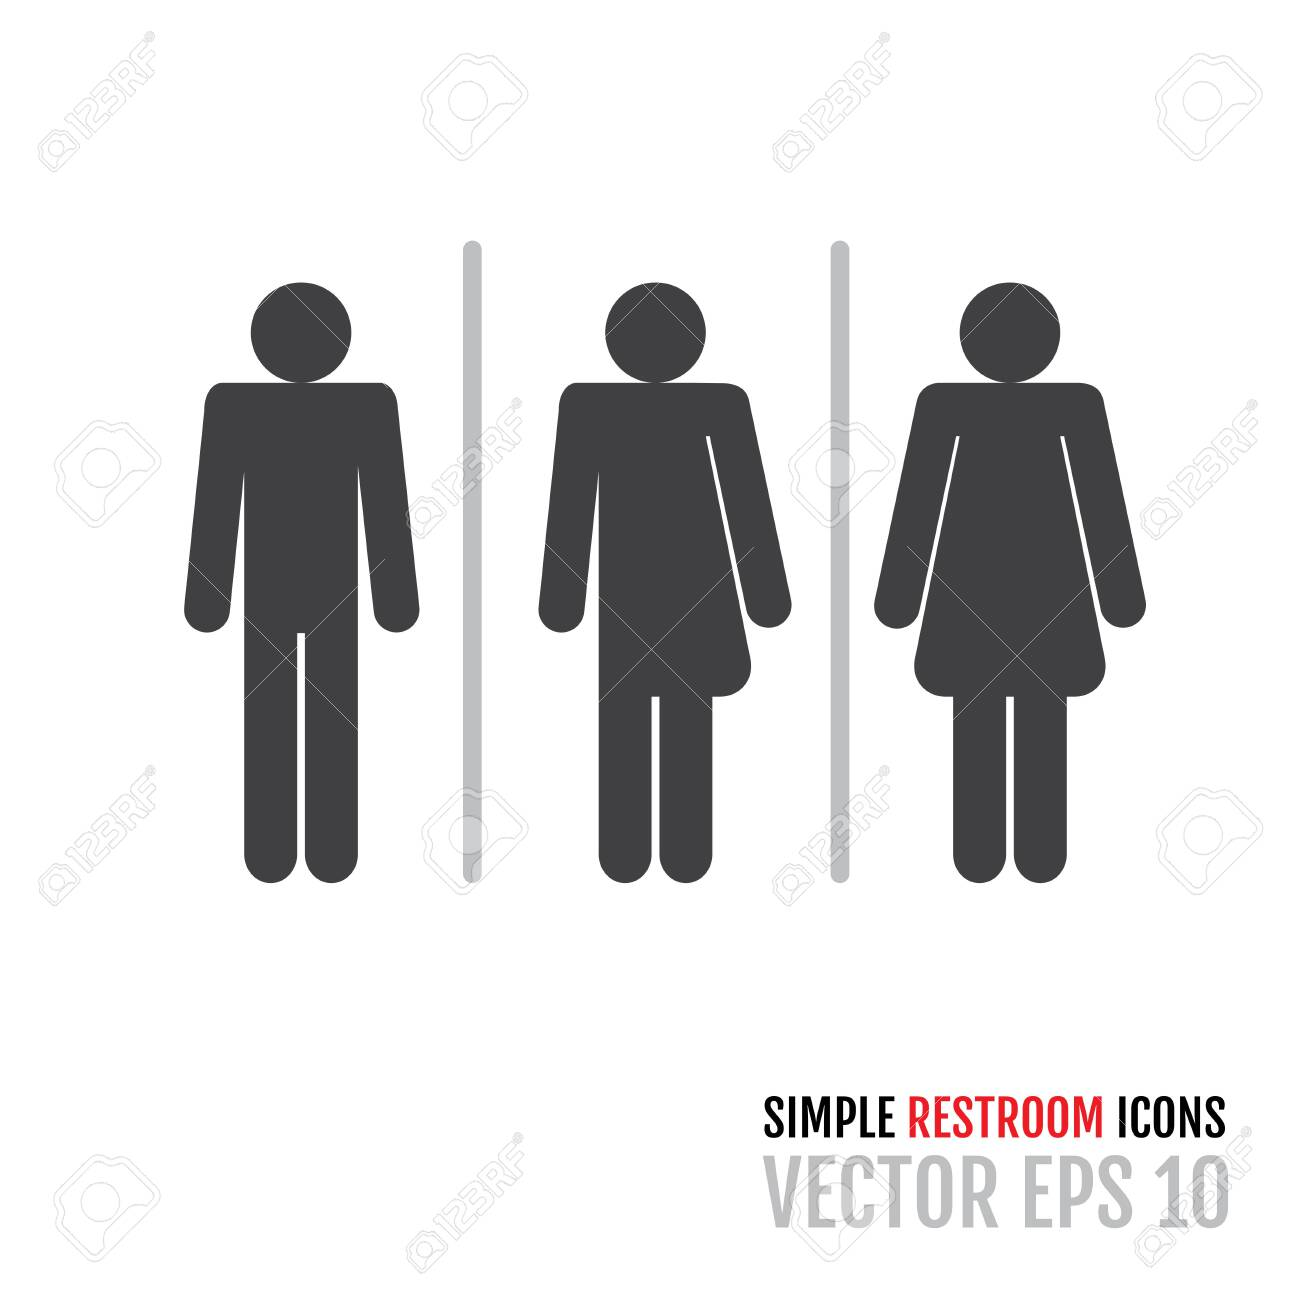 set of traditional restroom icons including gender neutral icon royalty free cliparts vectors and stock illustration image 130020957 set of traditional restroom icons including gender neutral icon